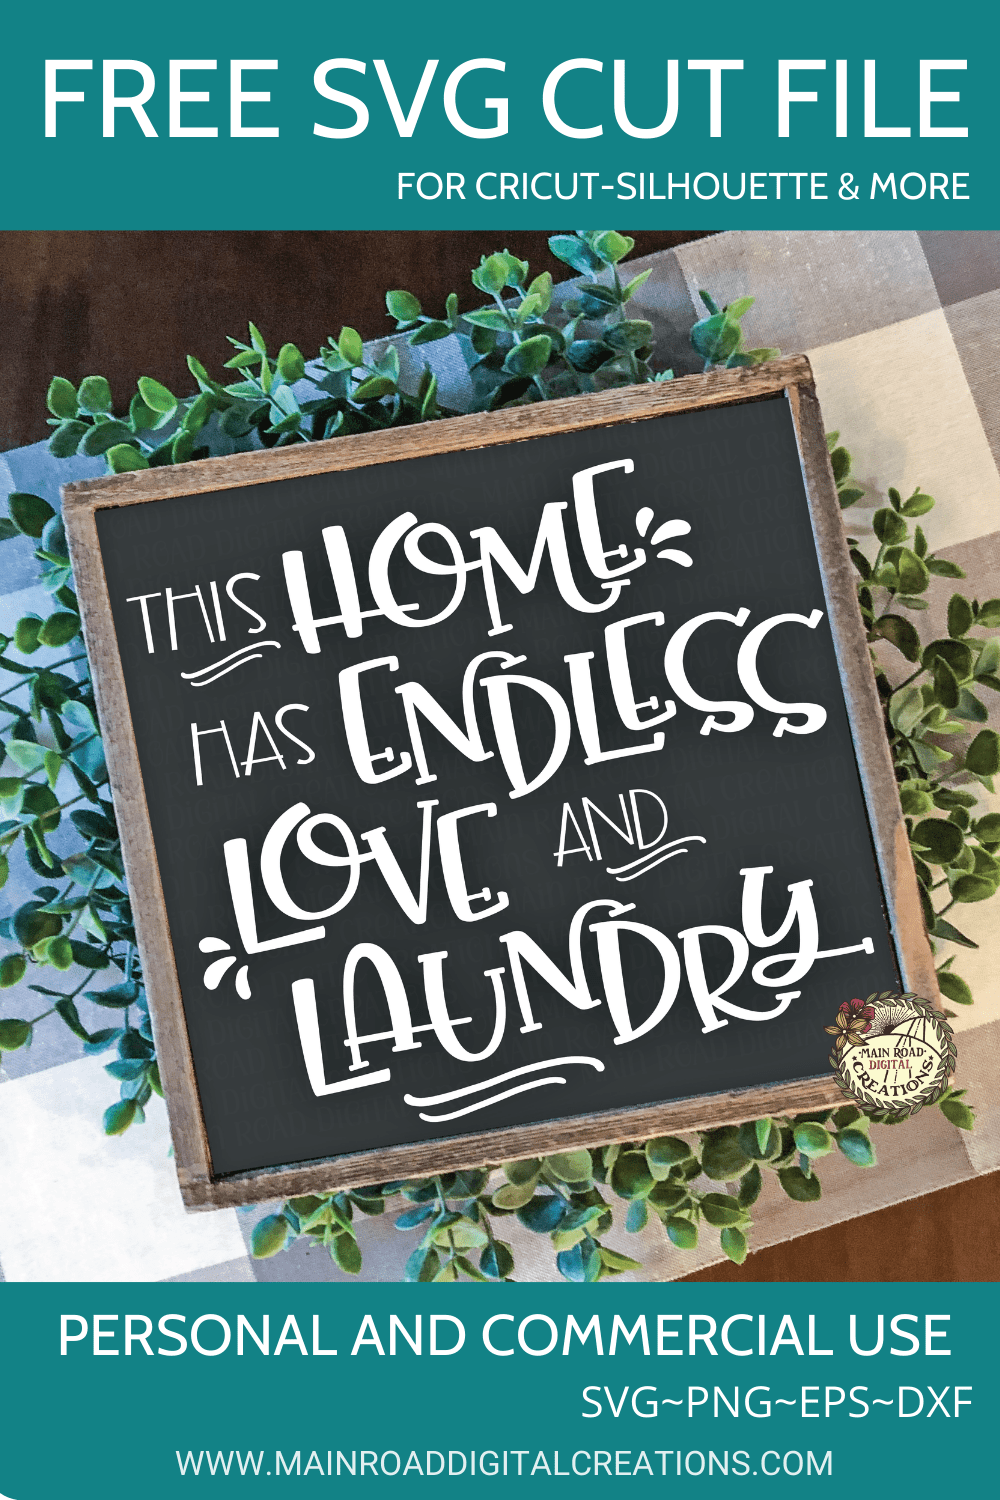 Home and Laundry sign free svg